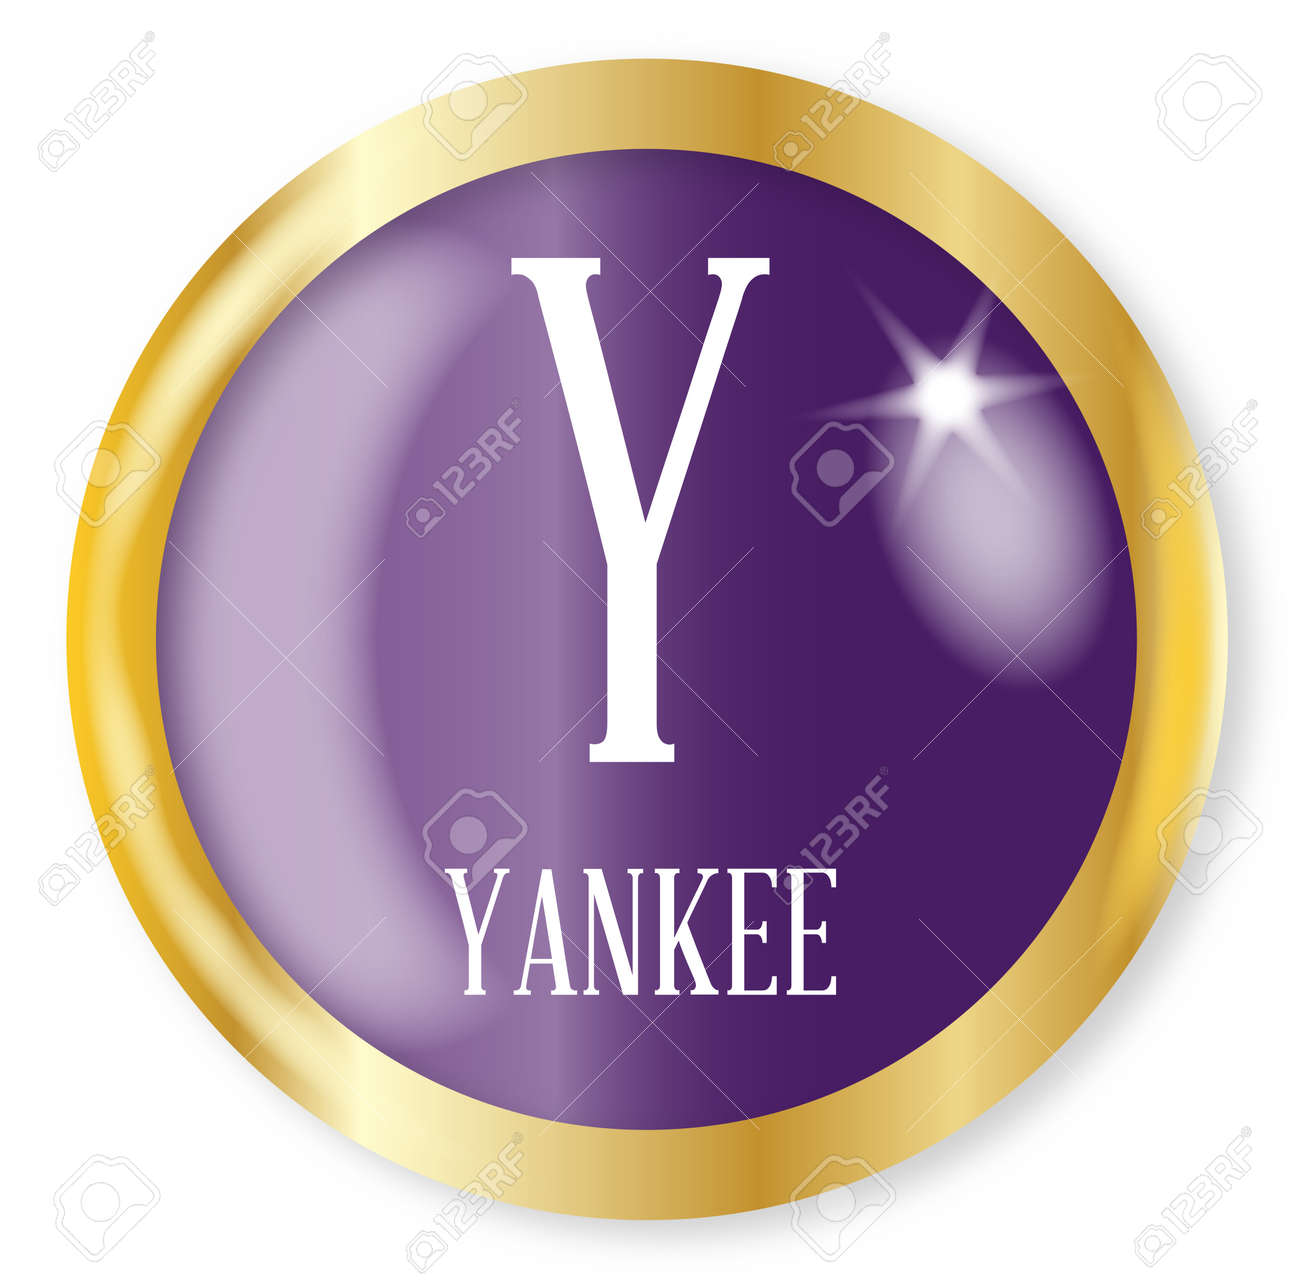 Y For Yankee Button From The Nato Phonetic Alphabet With A Gold Royalty Free Cliparts Vectors And Stock Illustration Image 77102436